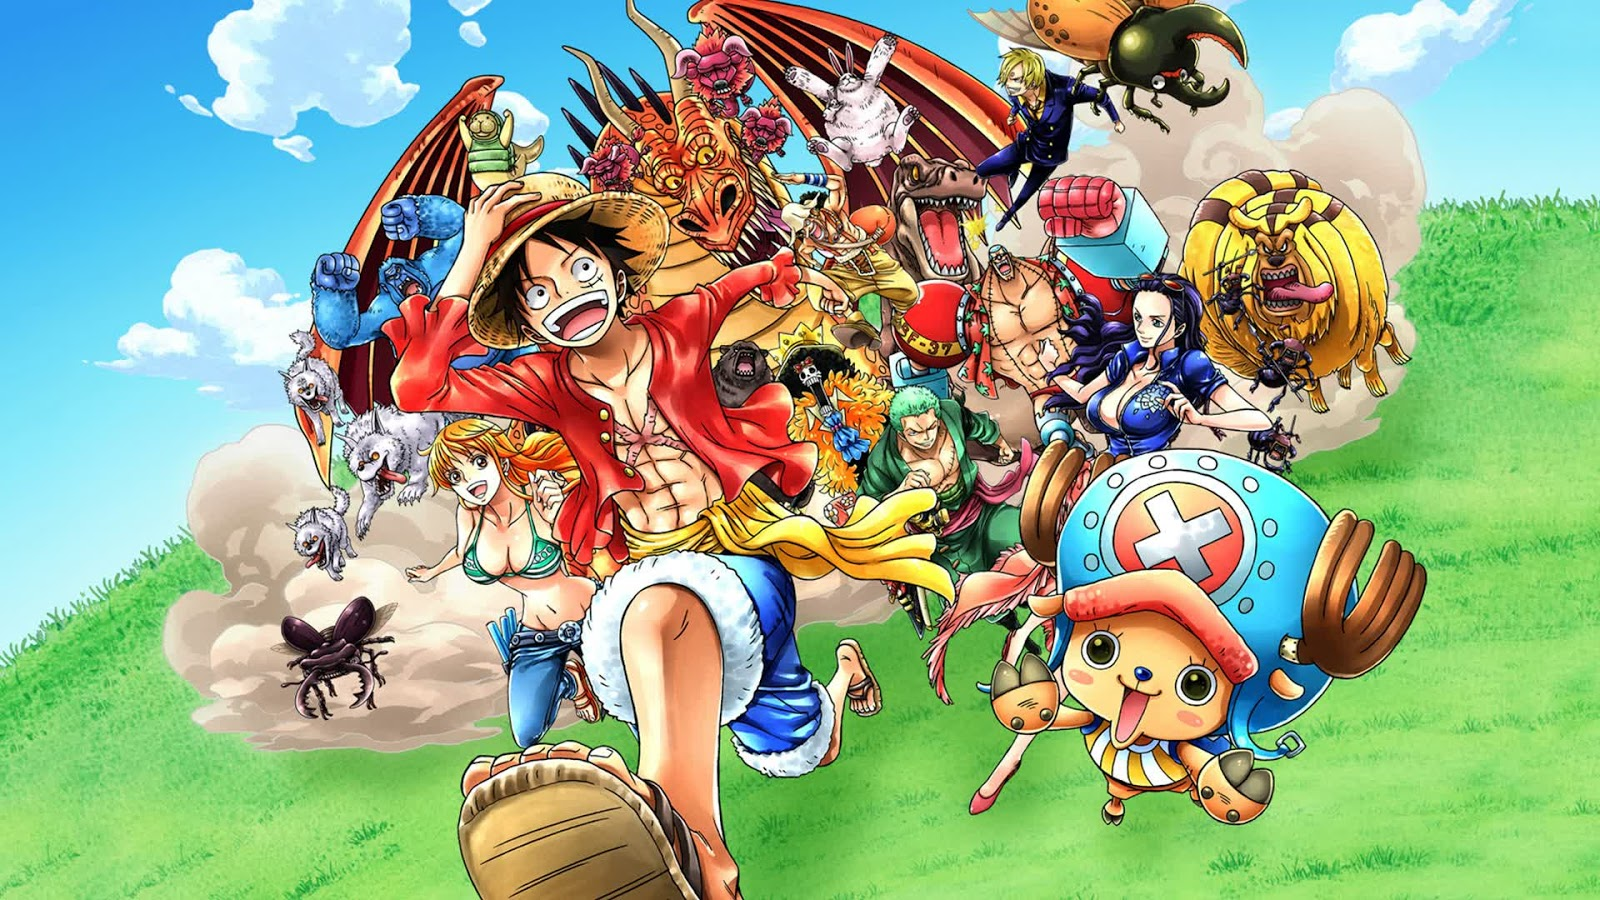 Of The Latest Installment Unlimited Series With Over 50 DLCs Included This Is Thirty Sixth Video Game Based On One Piece Manga Anime